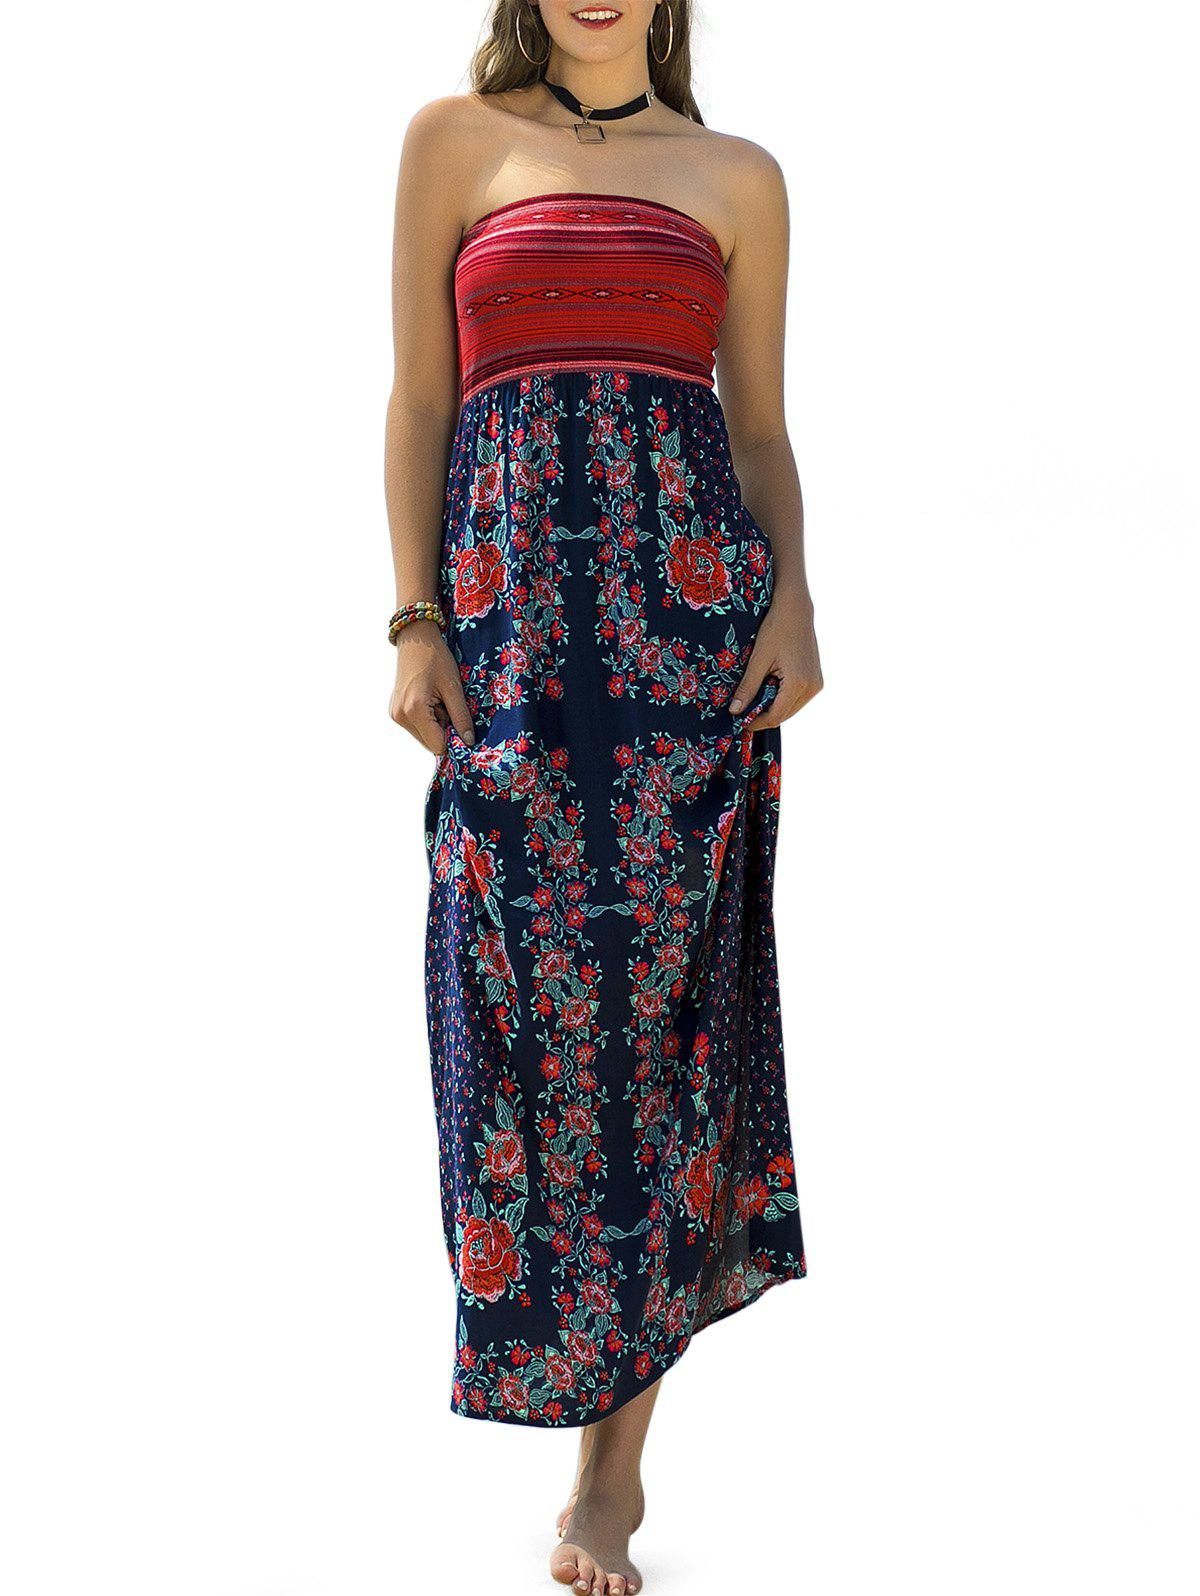 Store Vacation Style Strapless Floral Printed Dress